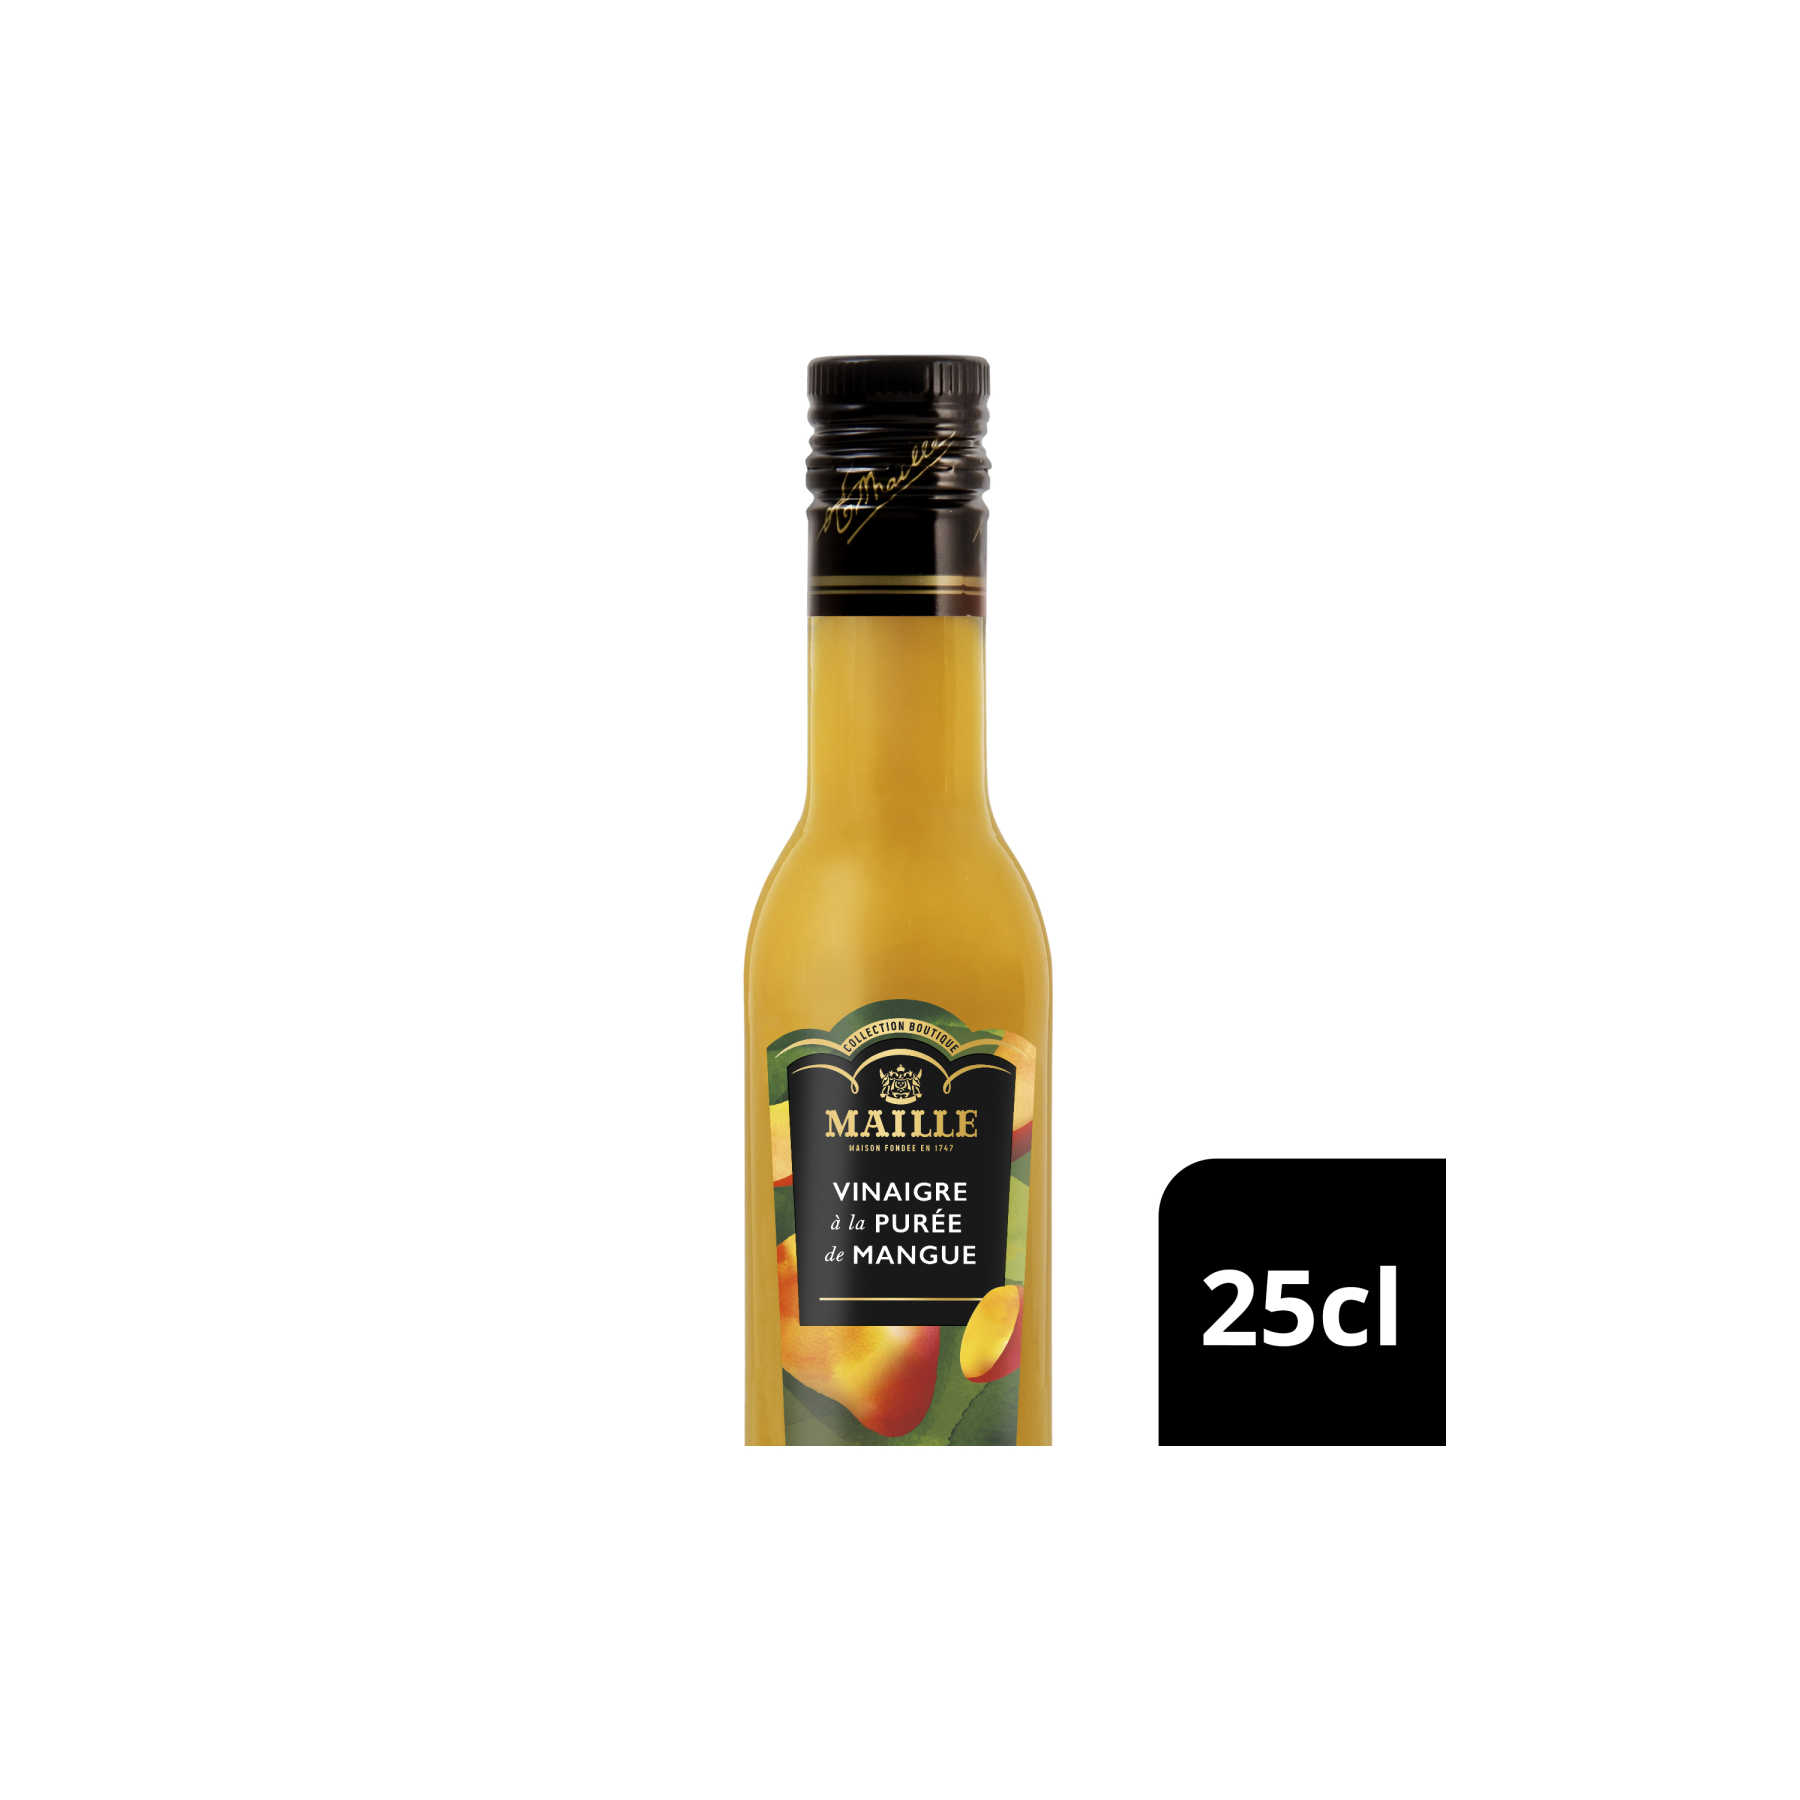 MAILLE VISUAL VINAIGRE MANGUE 25CL HERO